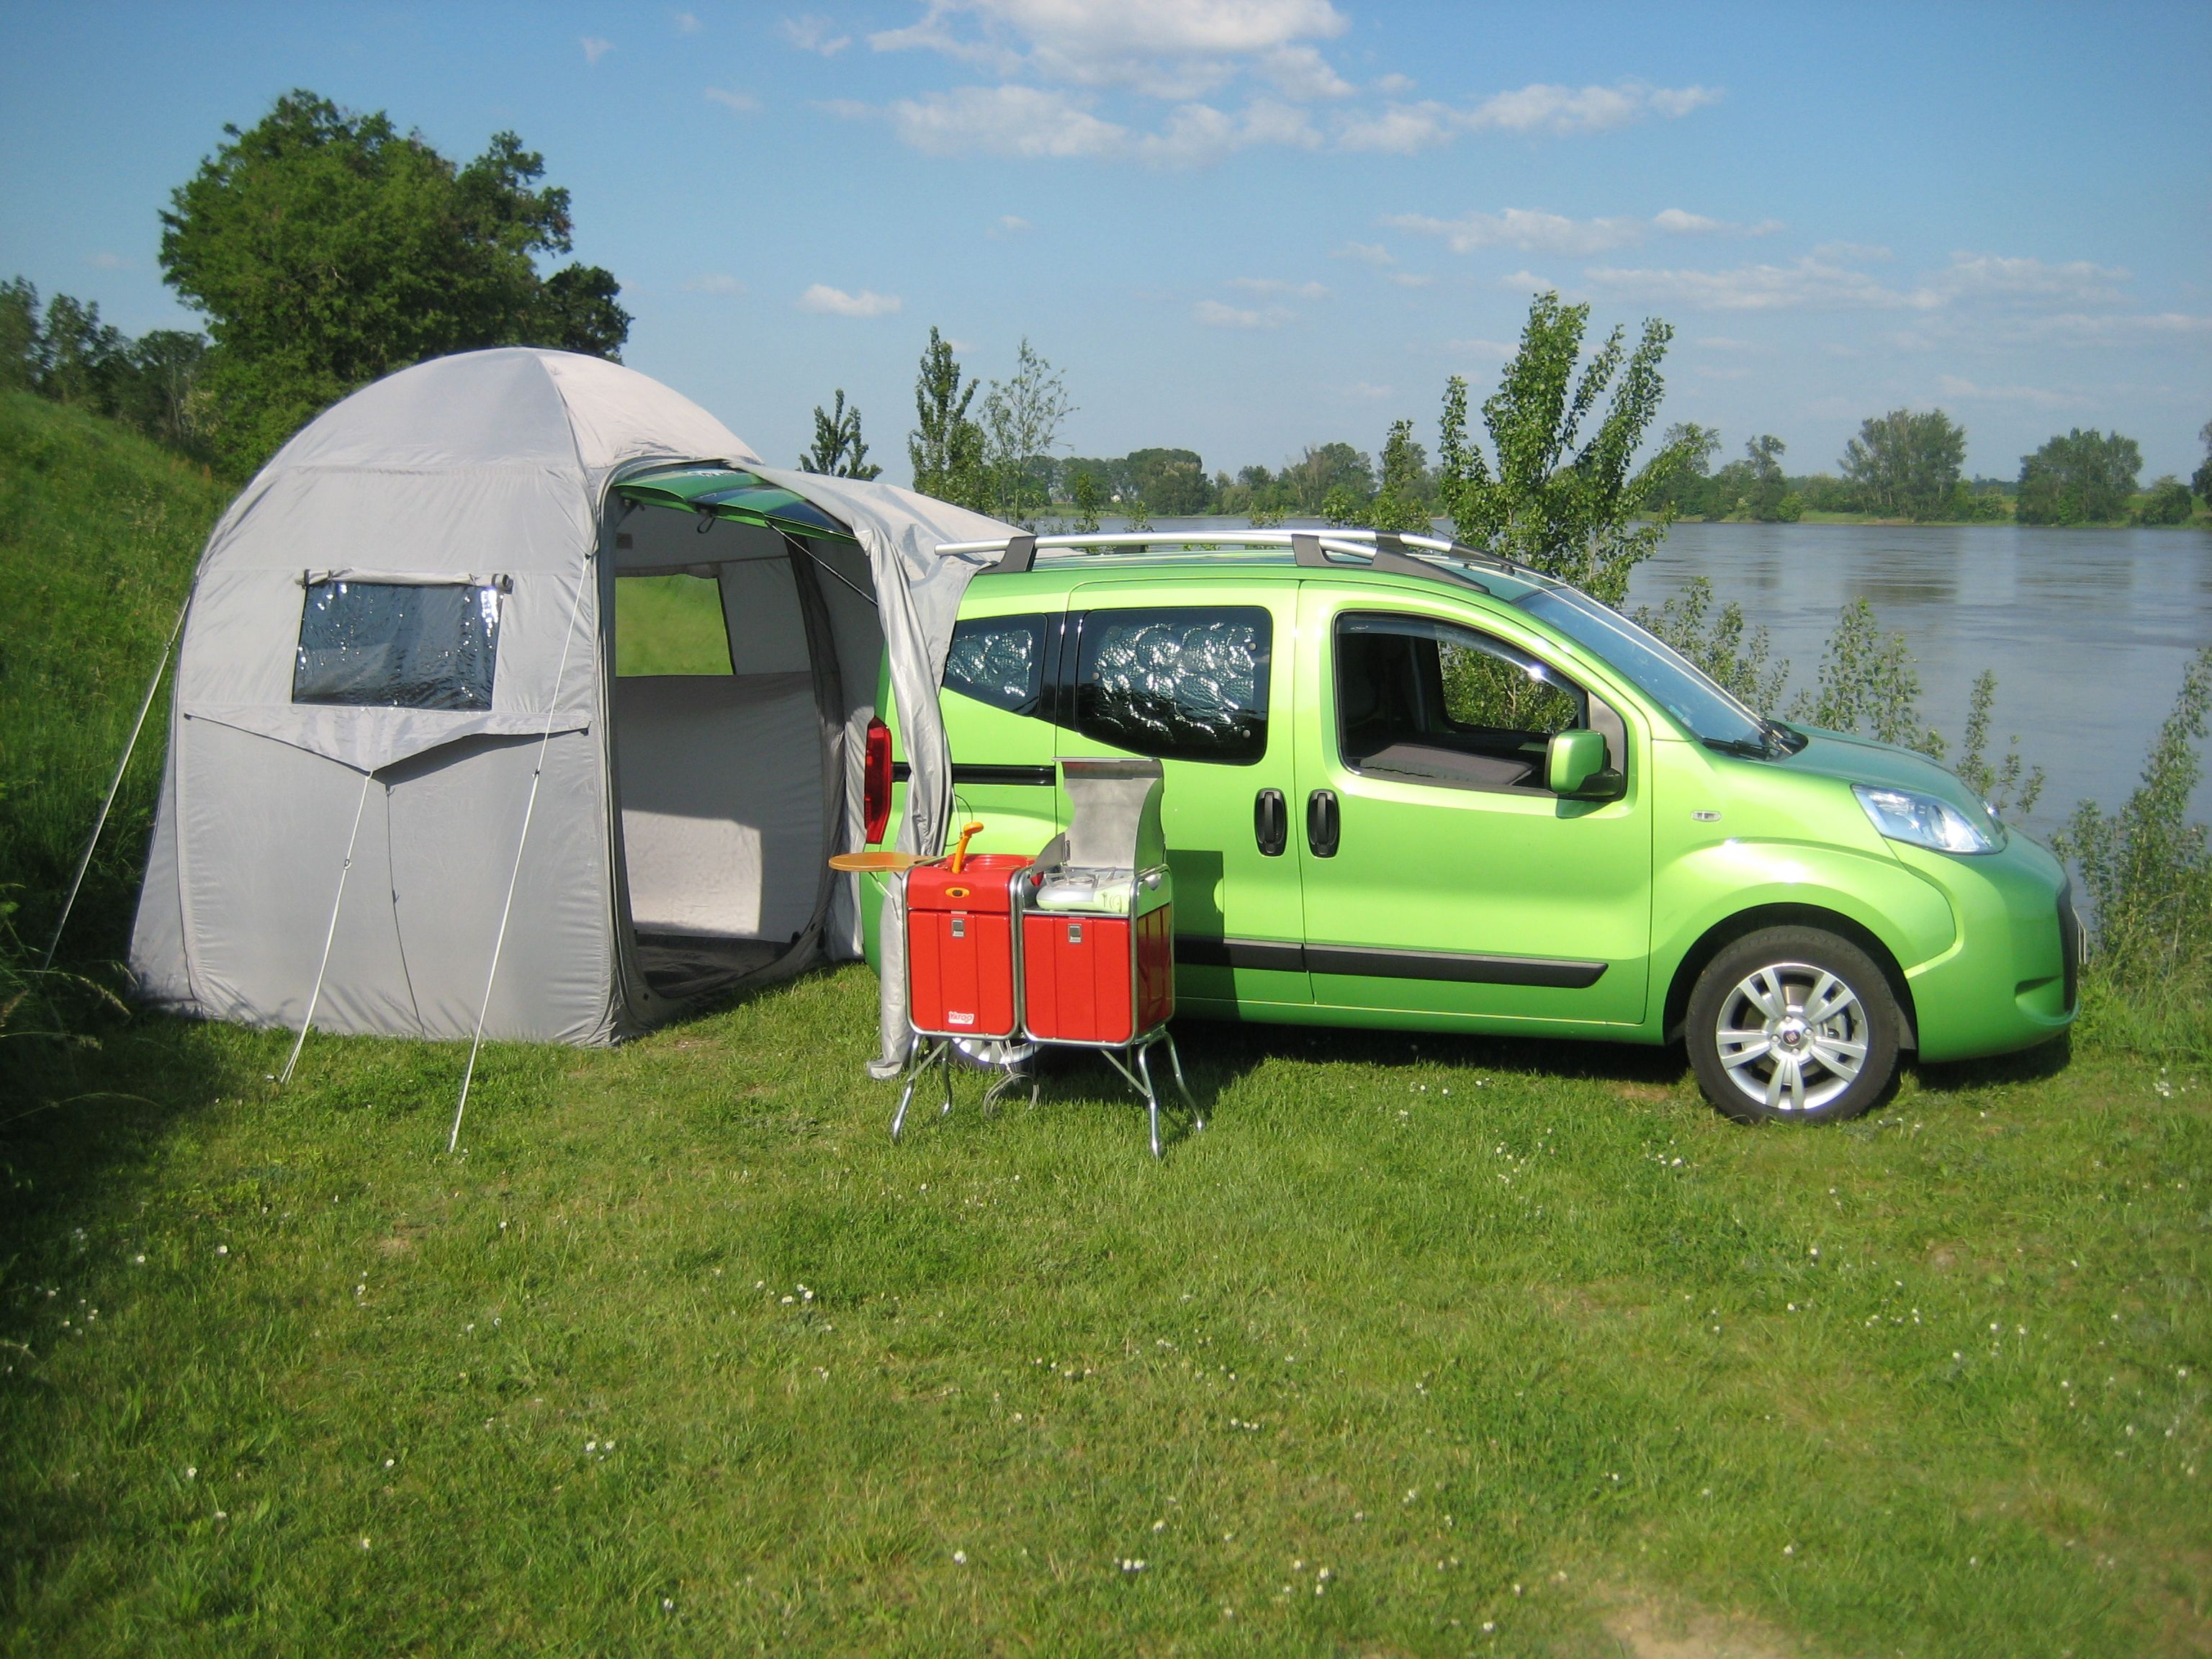 Yatoo with qubo car by fiat right next to loire river yatoo for yatoo with qubo car by fiat right next to loire river vtopaller Choice Image